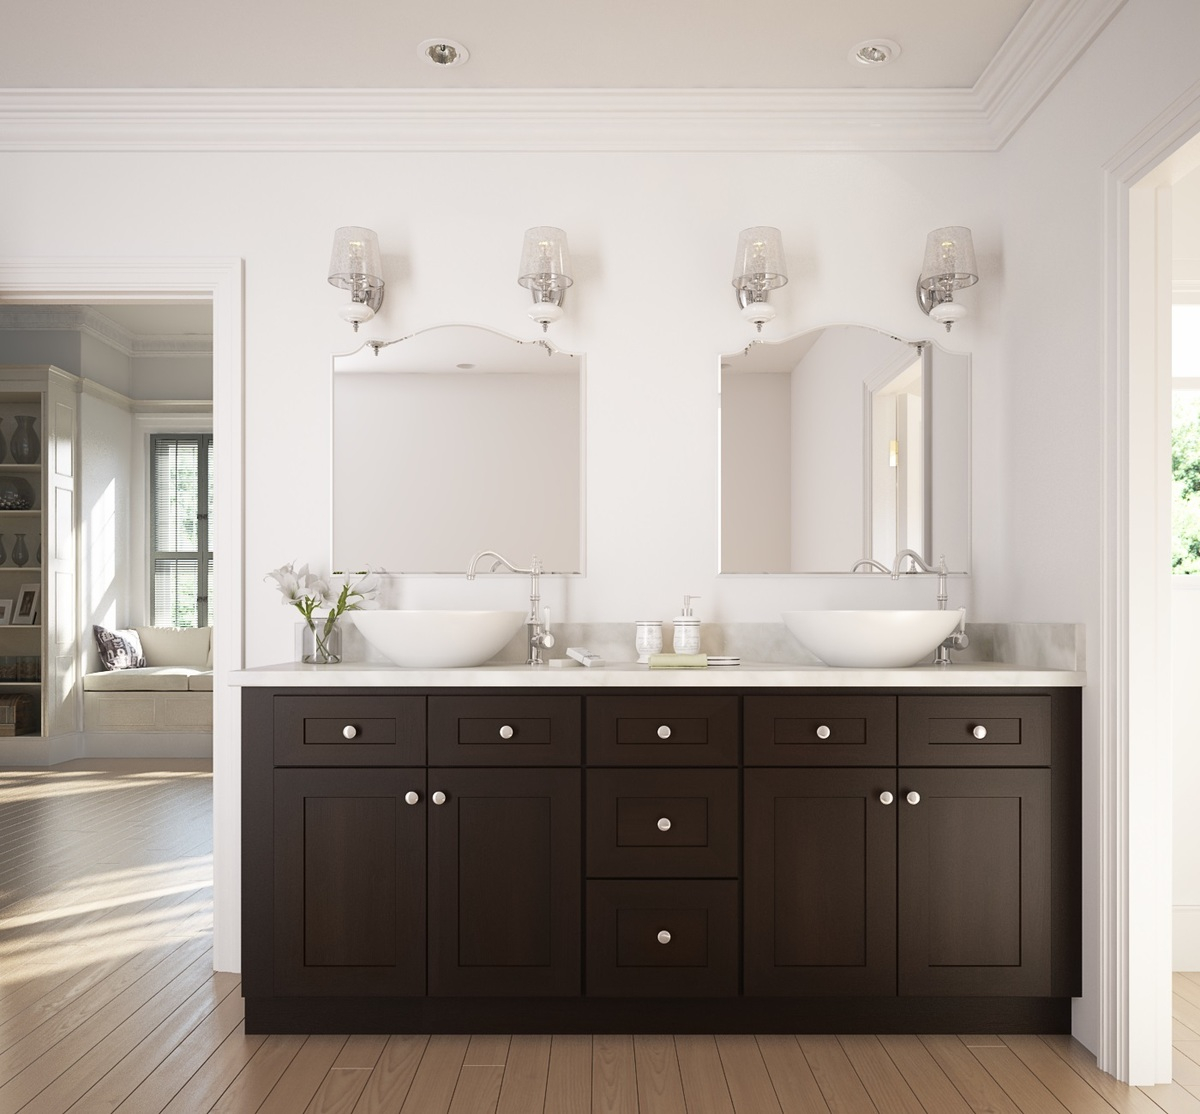 Glamorous Dark Chocolate Shaker - Ready To Assemble Bathroom Vanities with Best of Shaker Bathroom Cabinets